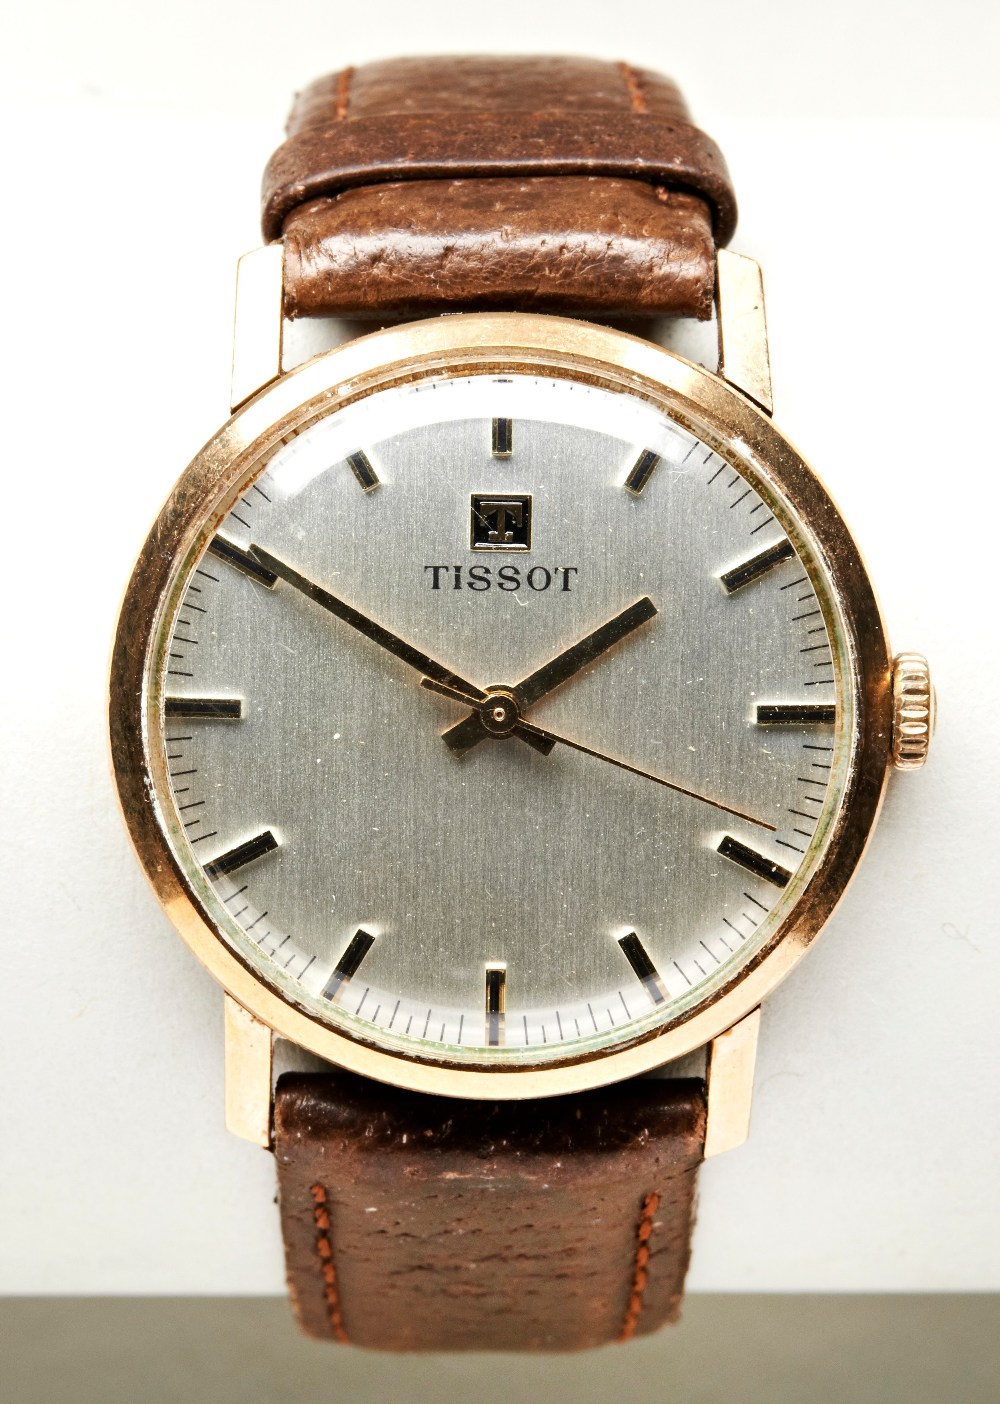 TISSOT 9CT MAN'S WRISTWATCH, 1970s, the plain slivered dial with baton numerals and later leather